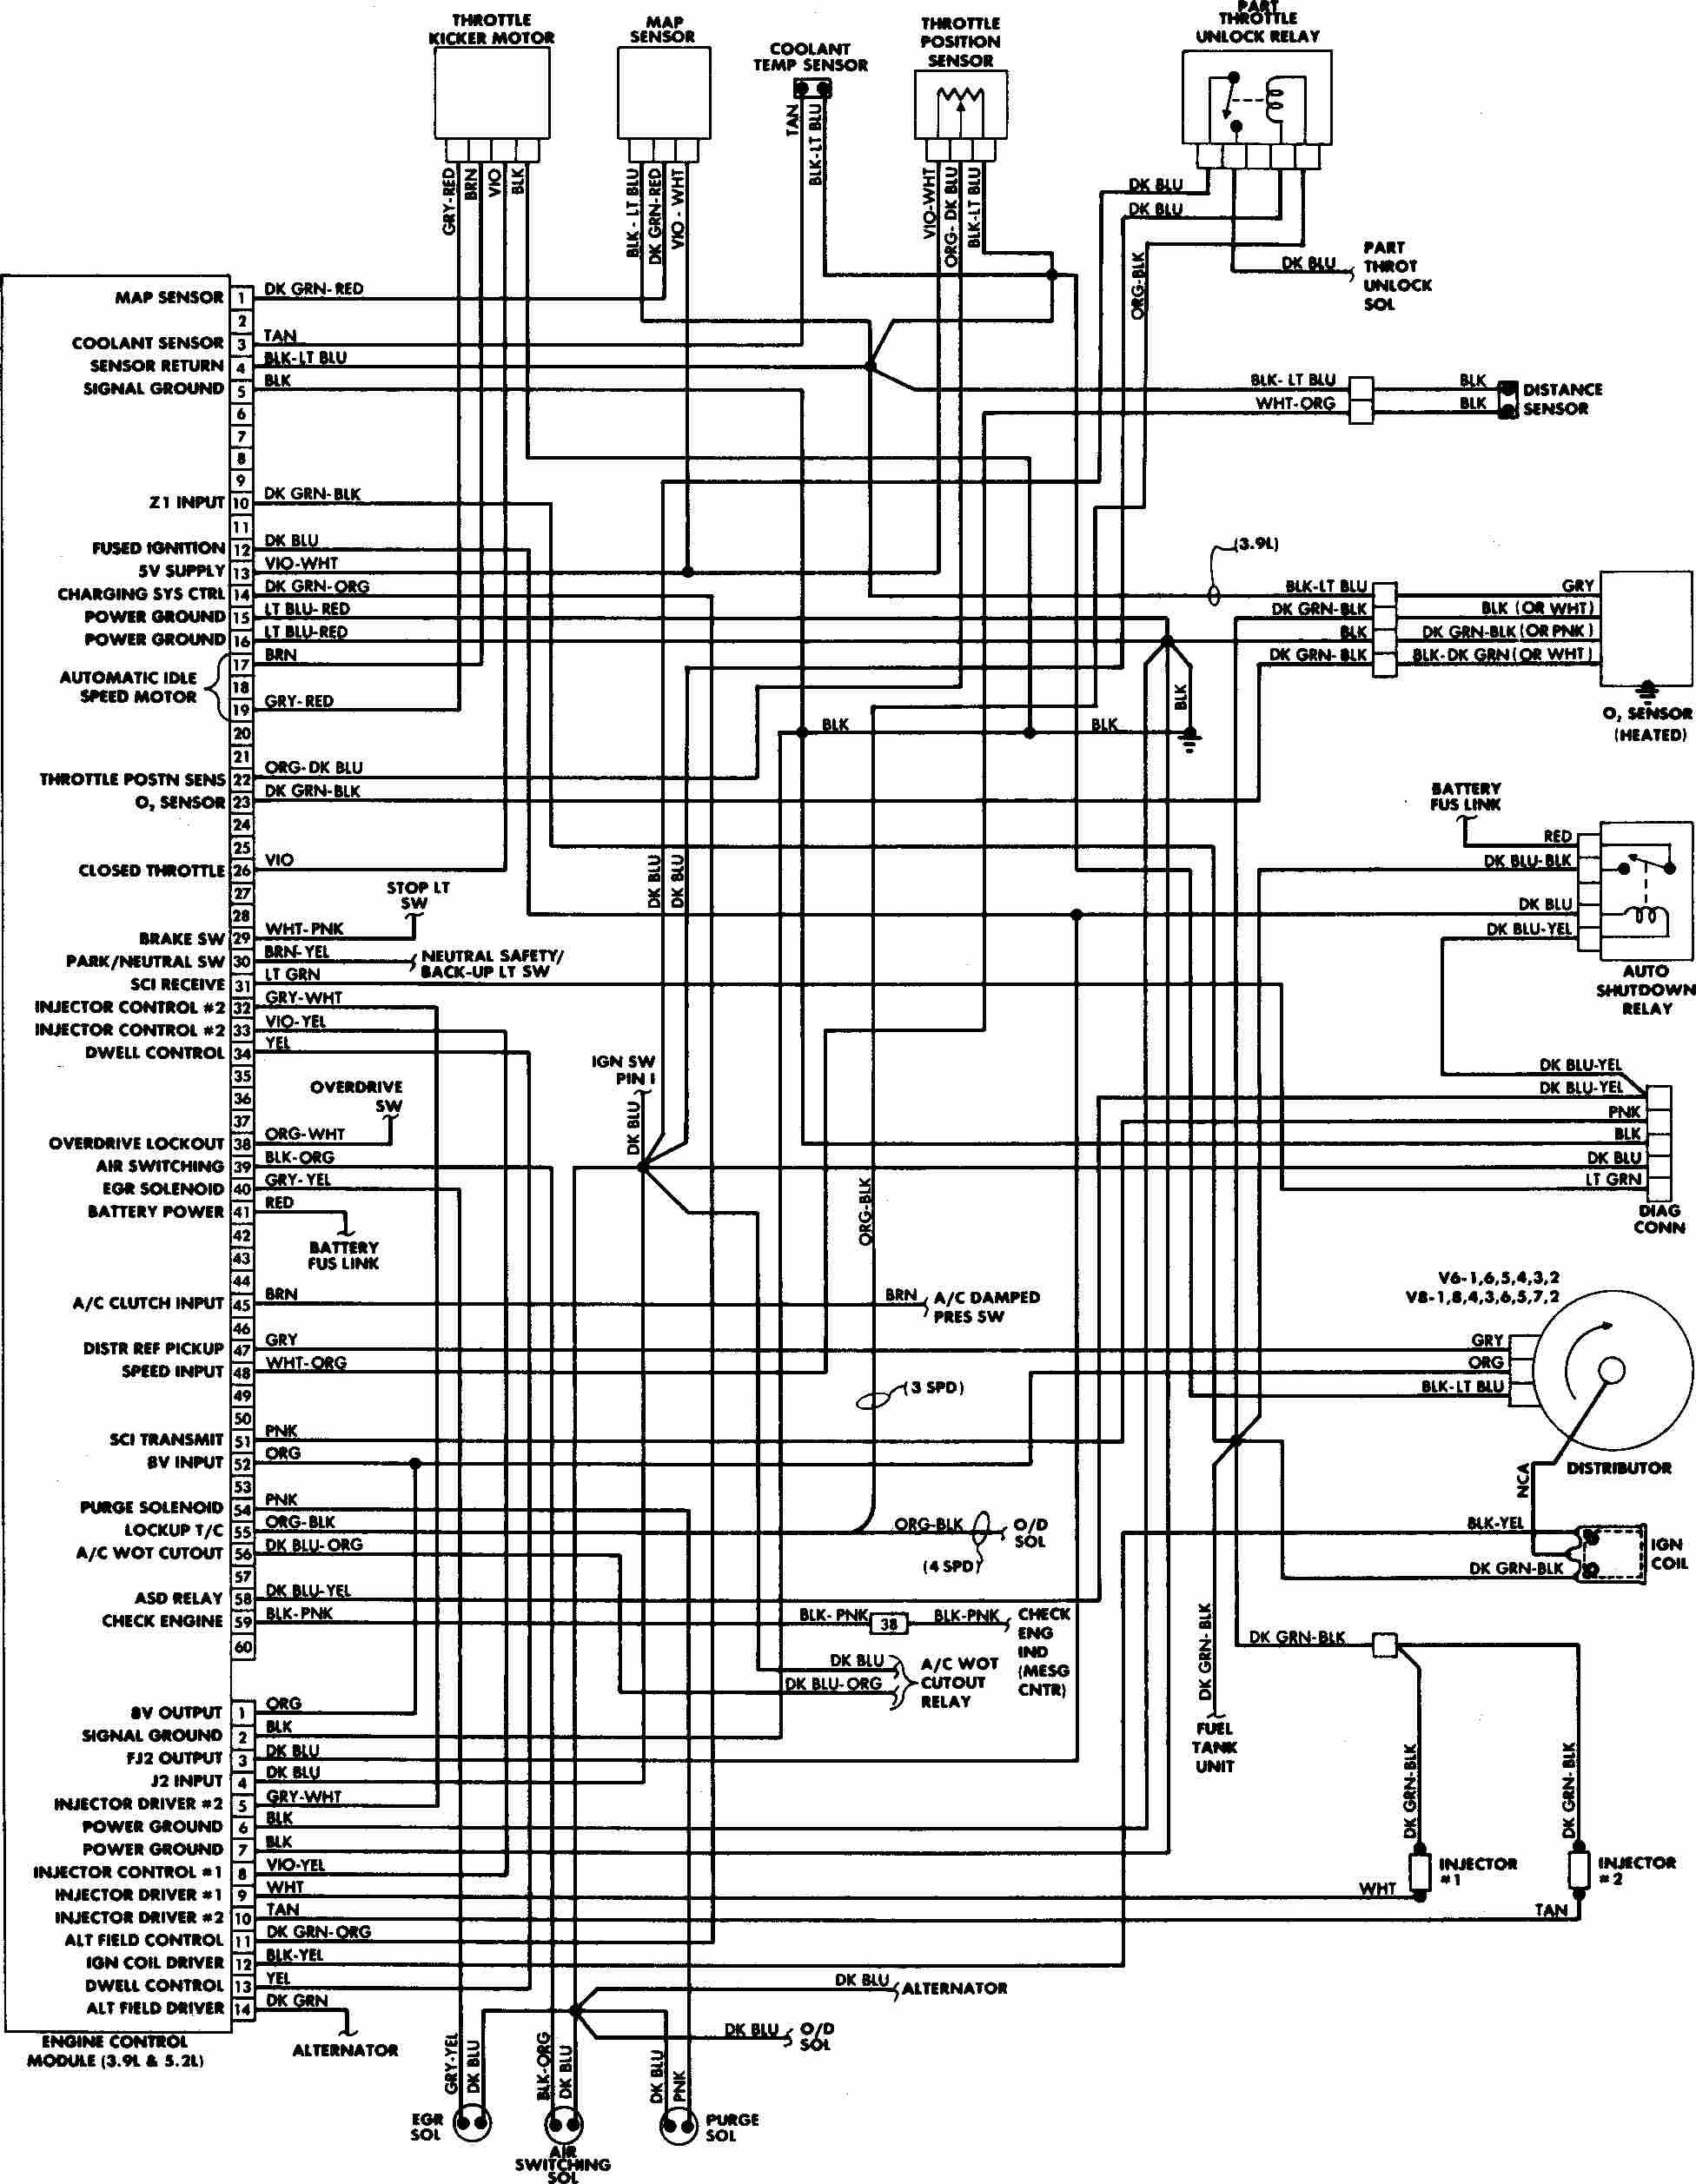 2001 Dodge Stratus Radio Wiring Diagram from lh5.googleusercontent.com